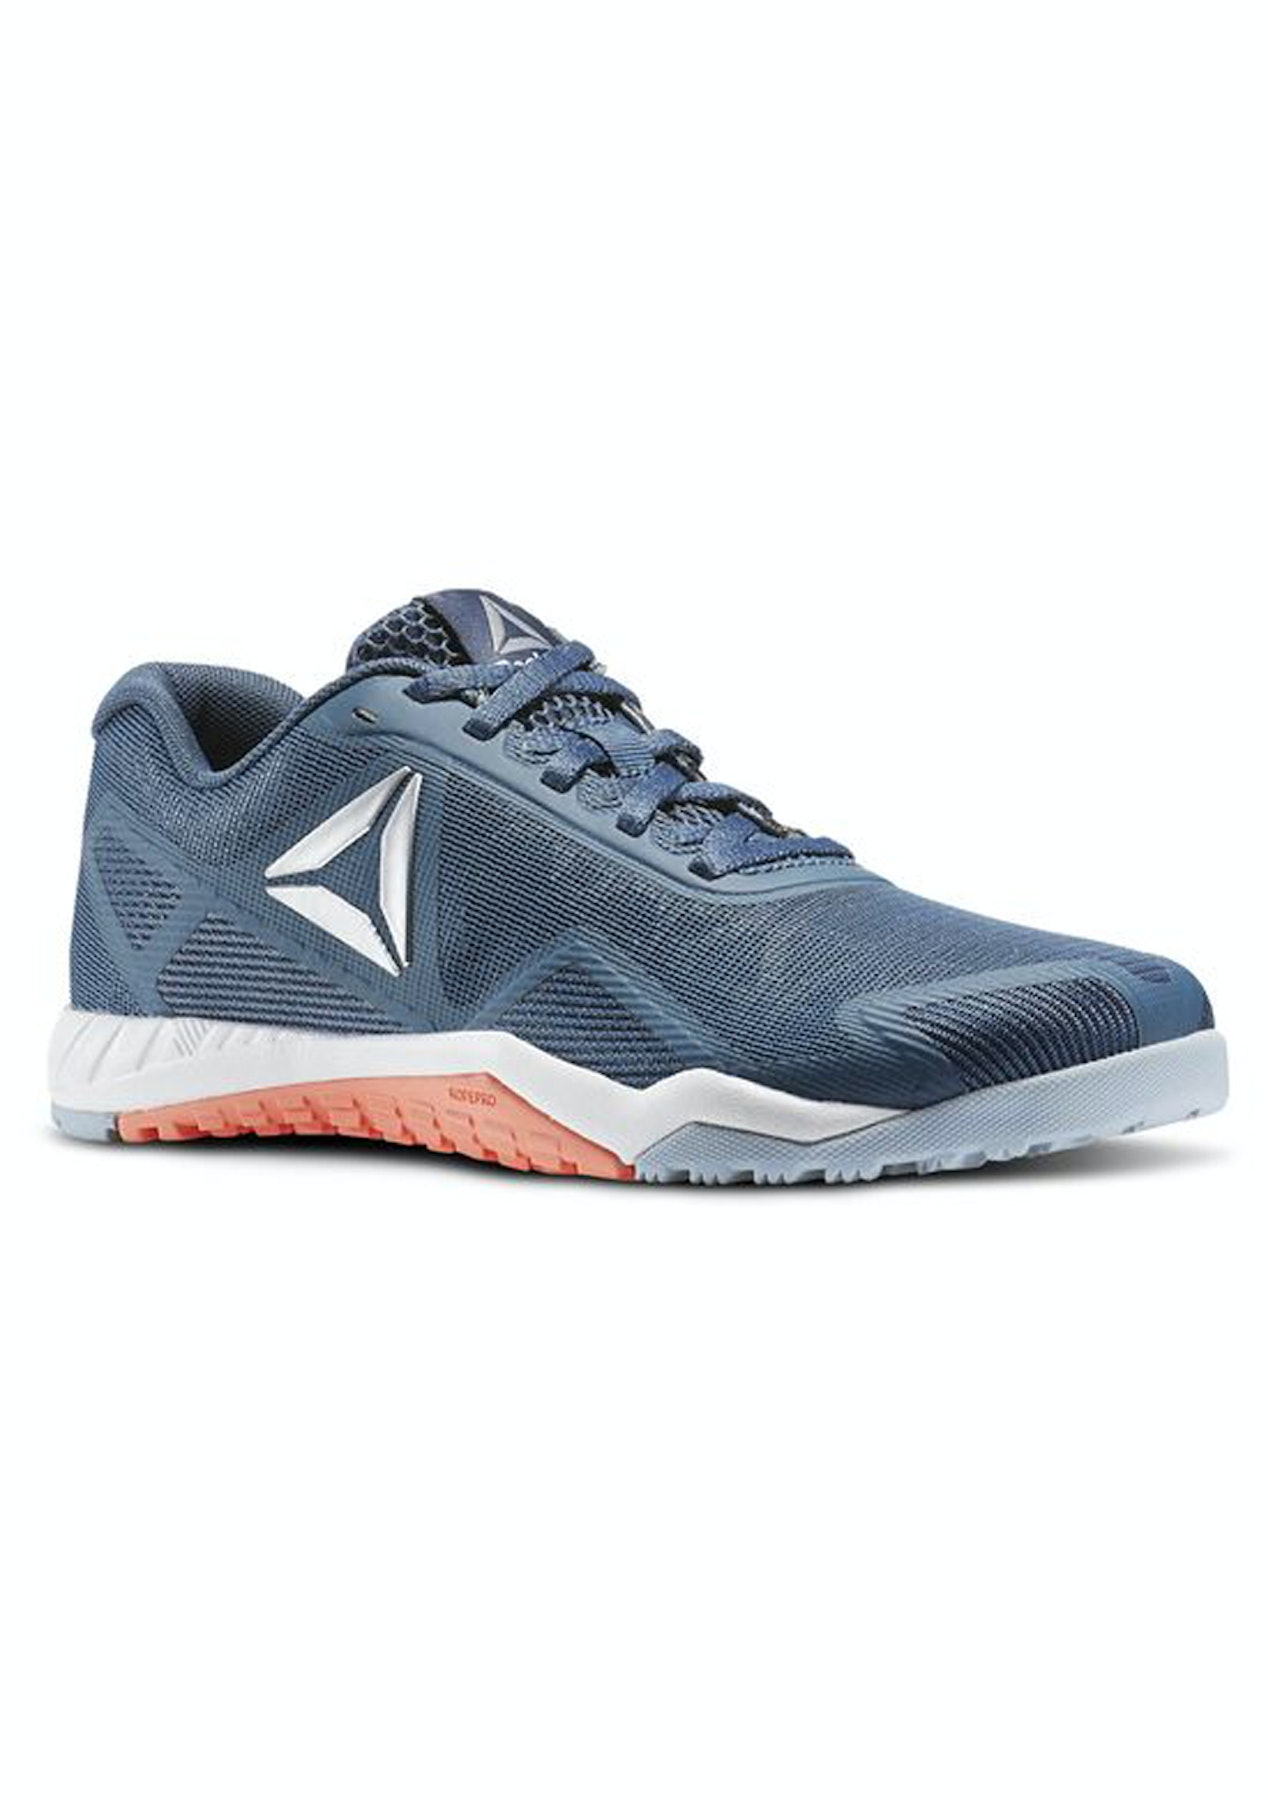 1f86f8bb1b531f Reebok Womens - Ros Workout Tr 2.0 - Brave Blue Gable Grey Stellar  Pink Pure Silver - Lacoste   More - Onceit